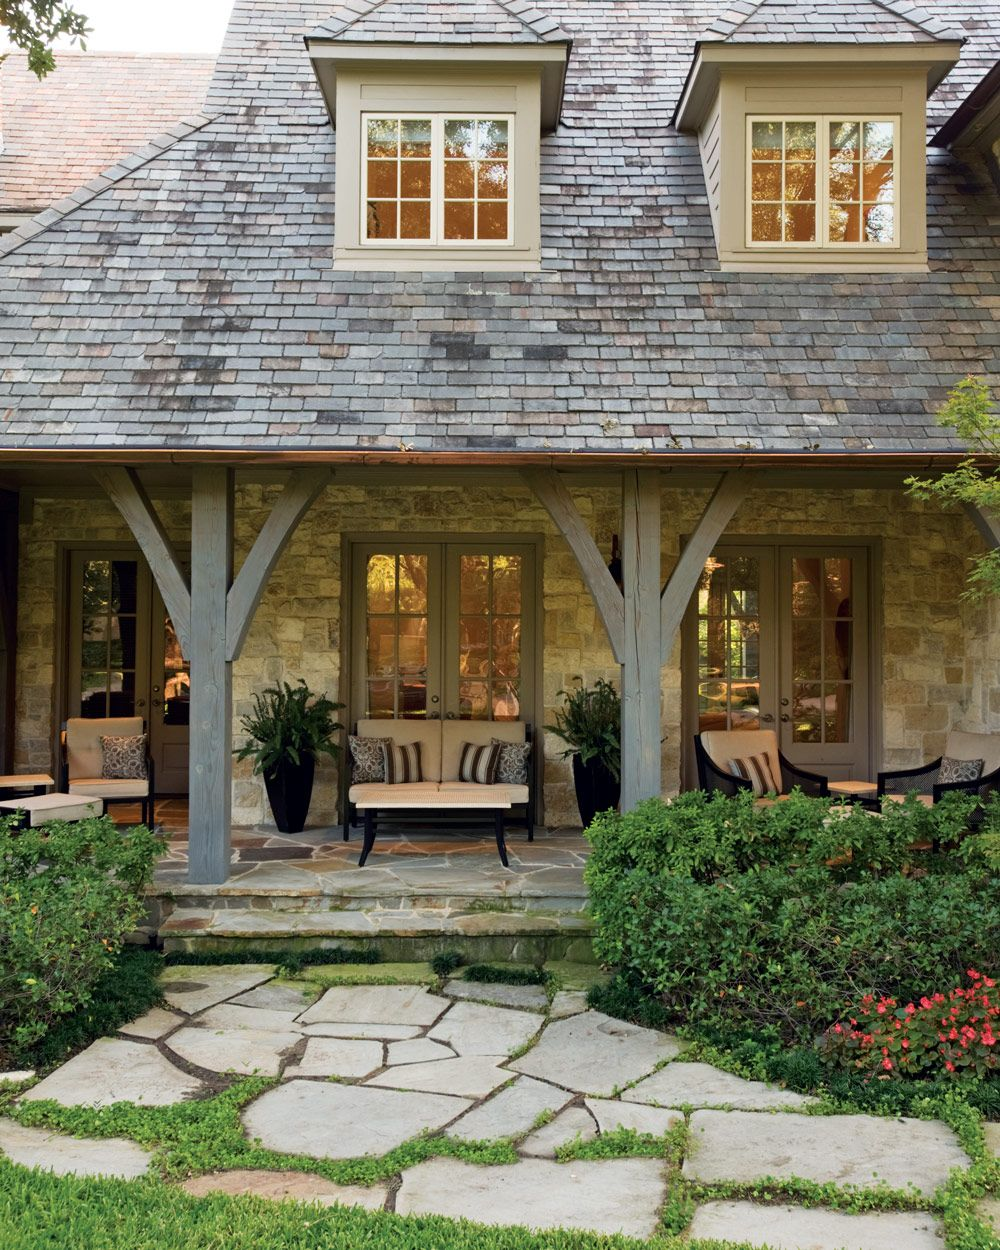 Modern French Farmhouse Exterior An Inviting Space To Sit And Stay Awhile Porches Future Home